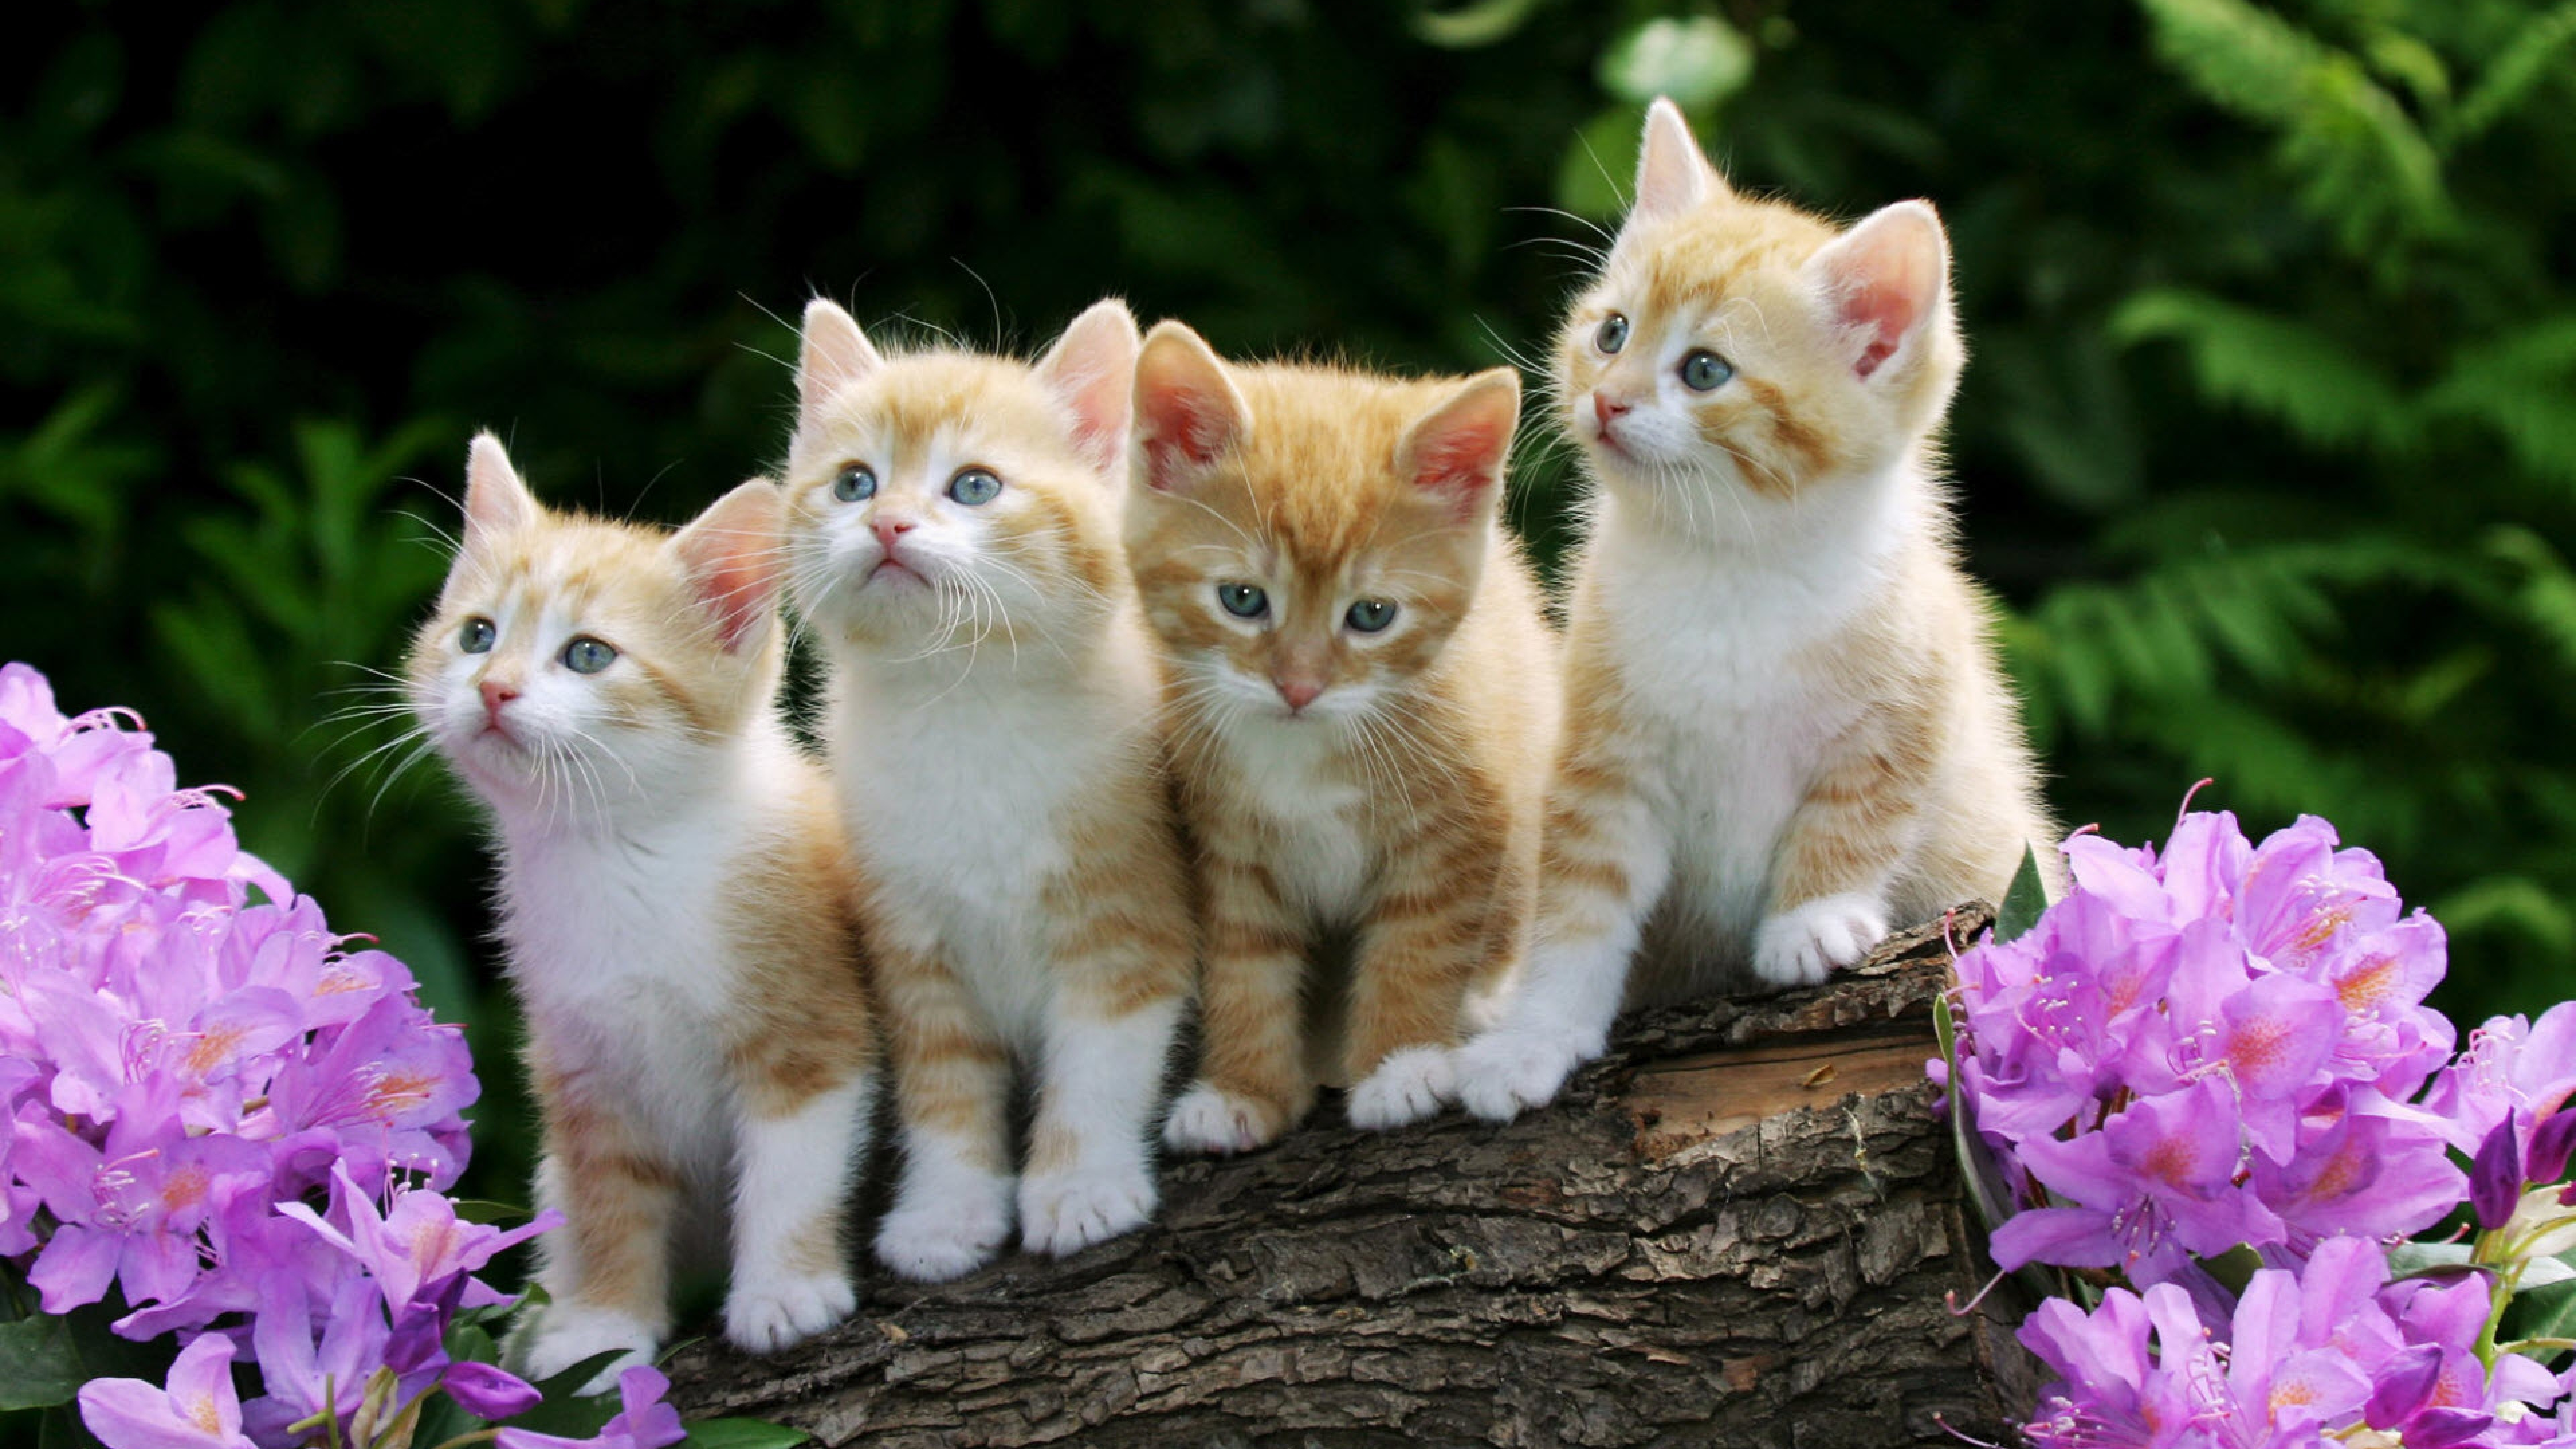 Cute Kittens Photo Wallpaper HD-3840x2160